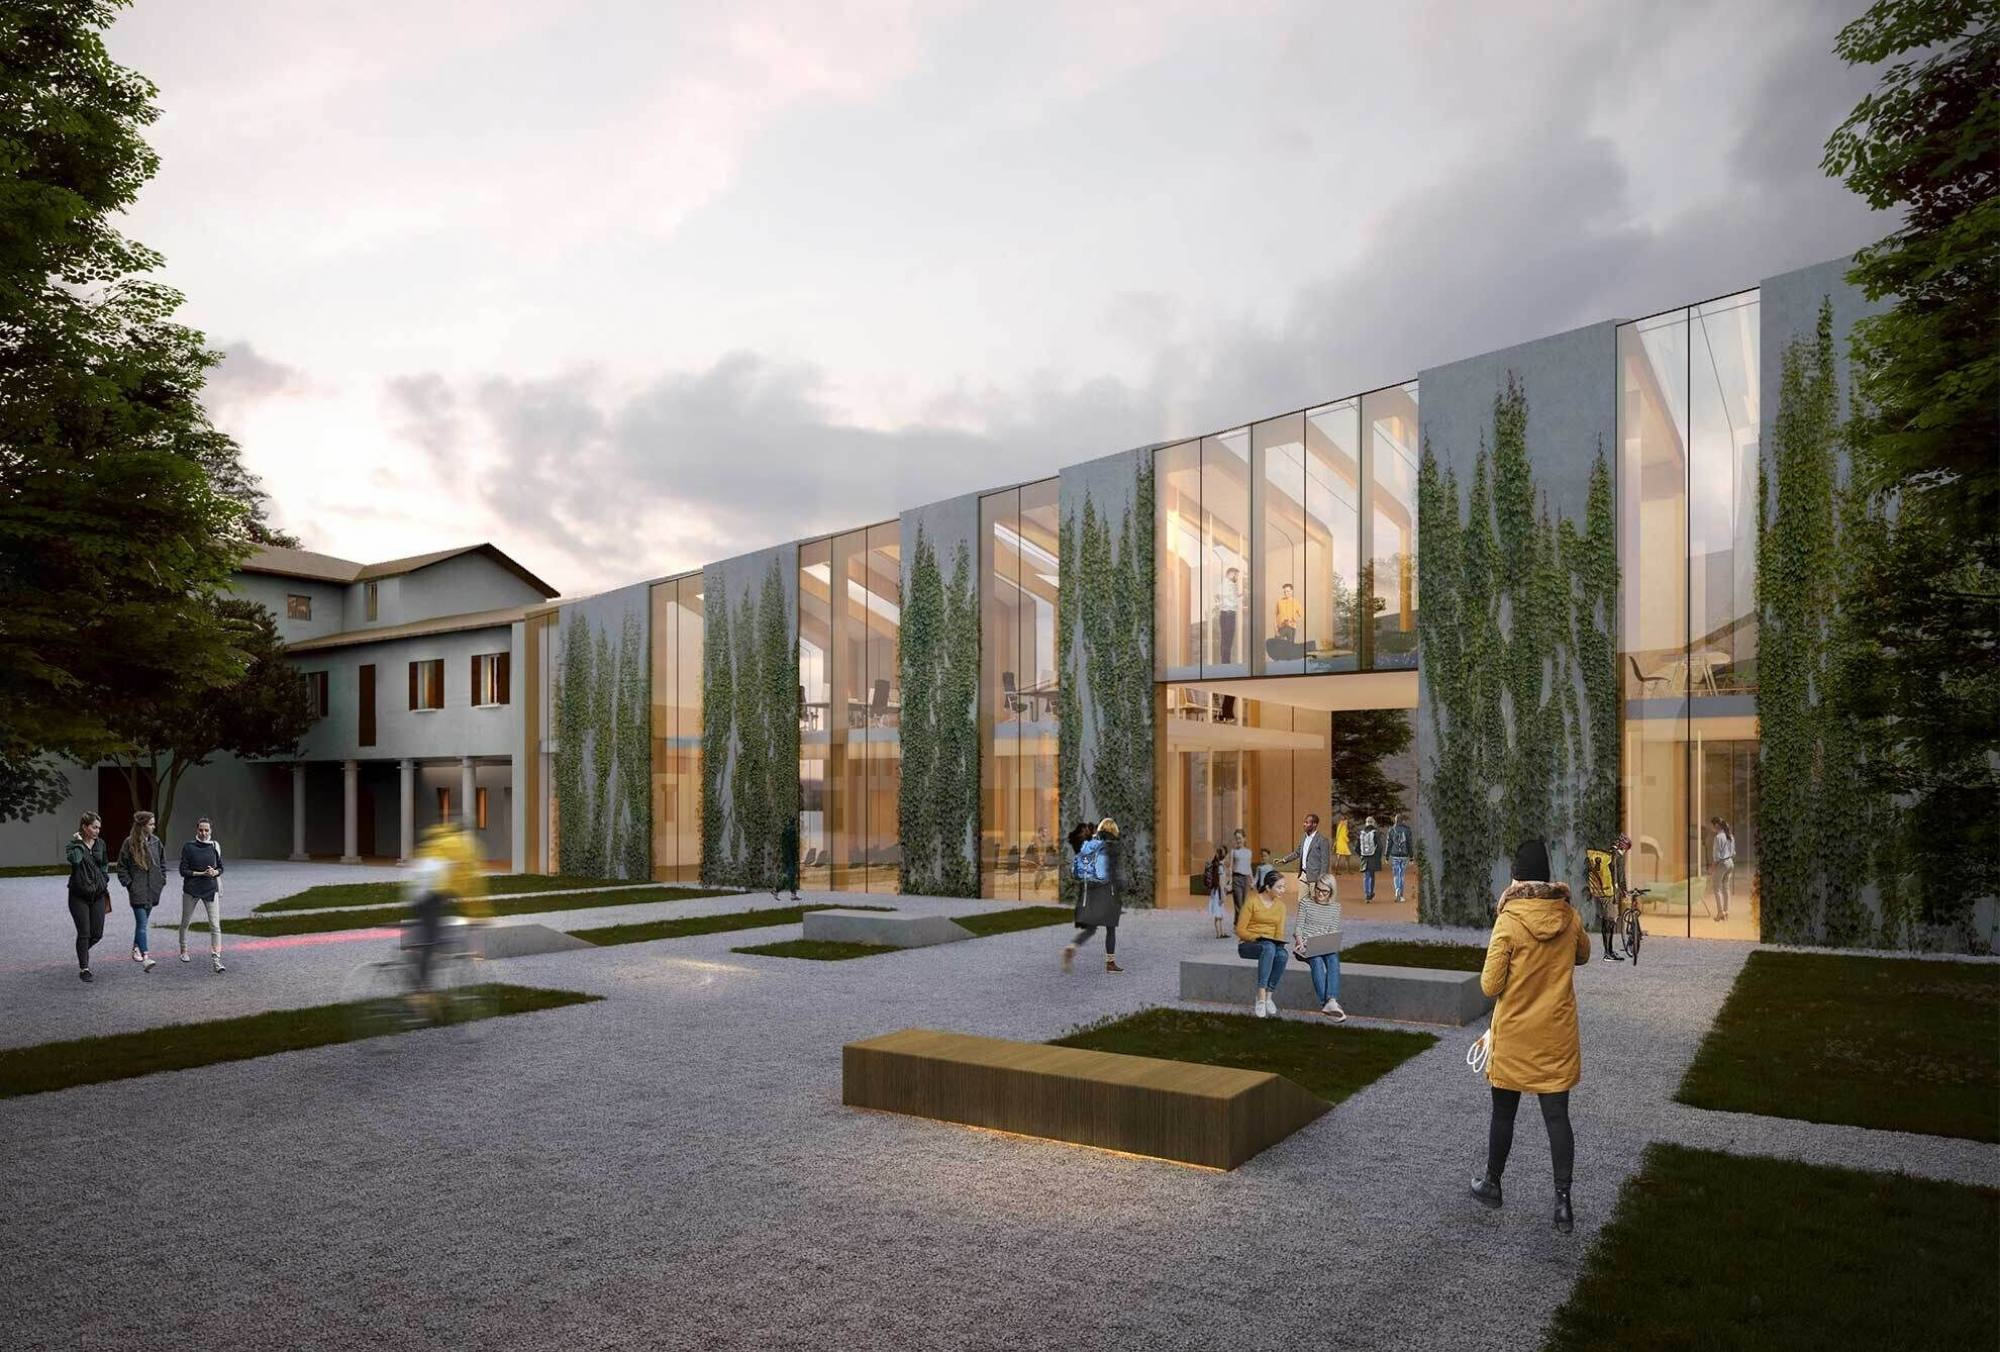 Piuarch winner of the public competition for the architectural recovery project of Cascina Sella in Milan